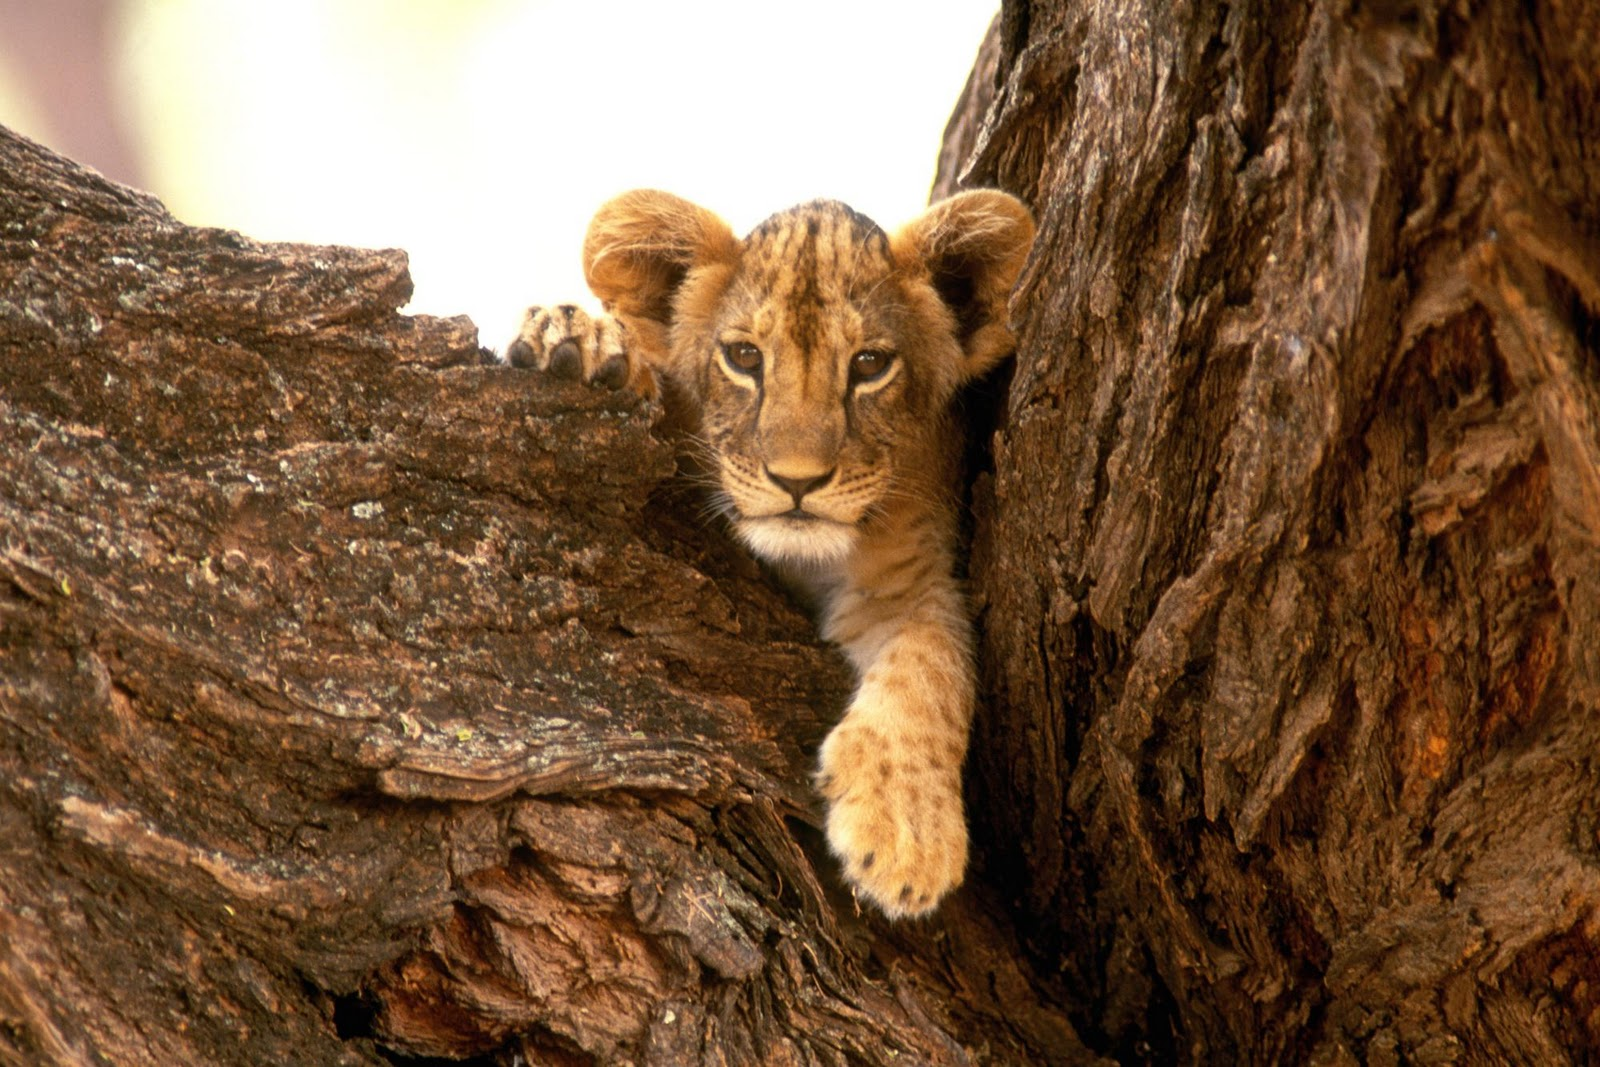 Funny wallpapersHD wallpapers lion cub wallpaper 1600x1067